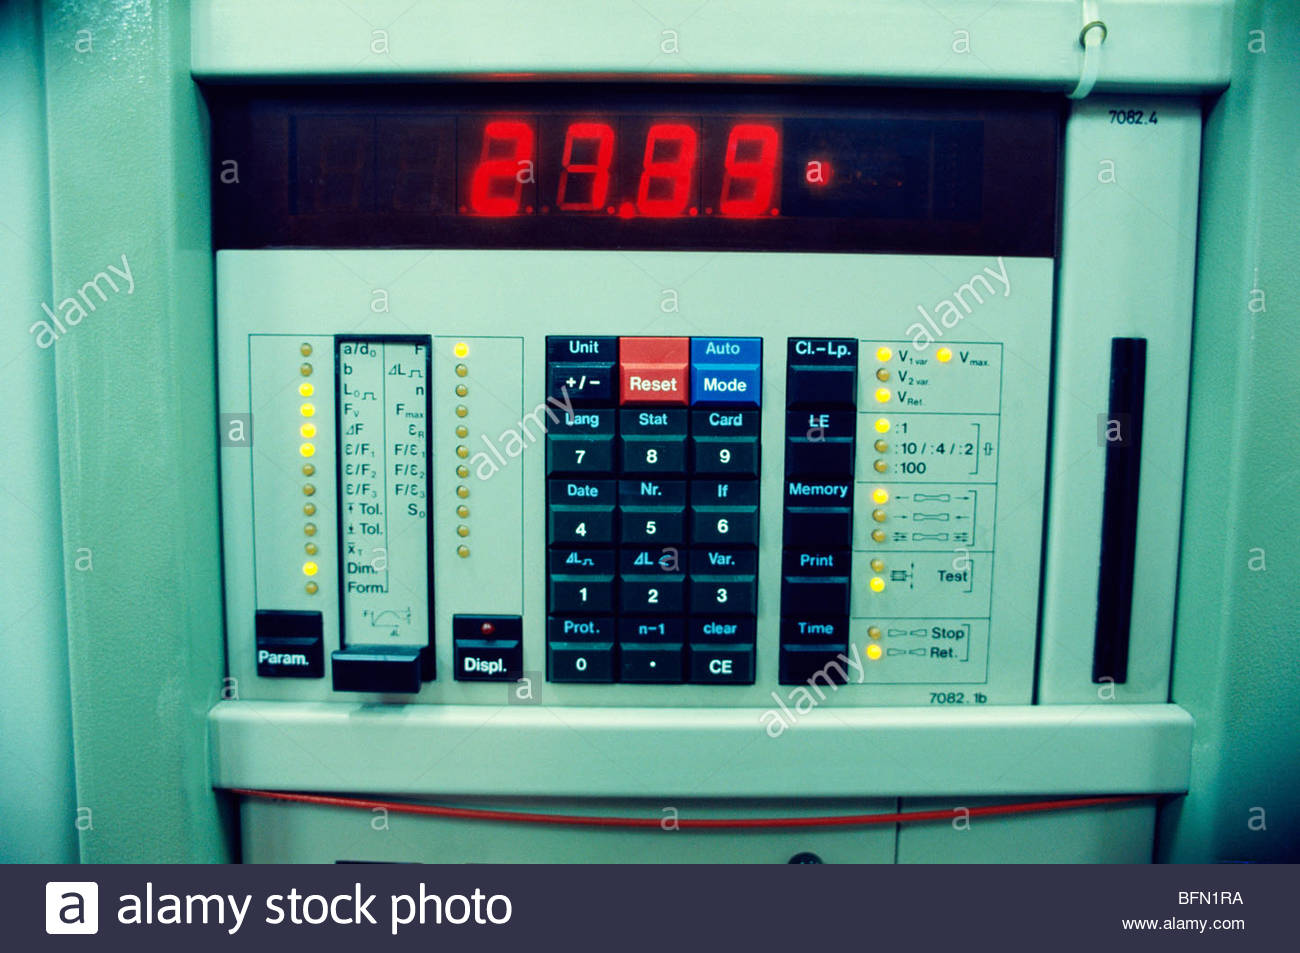 NCP 61253 : Control Panels ; India - Stock Image